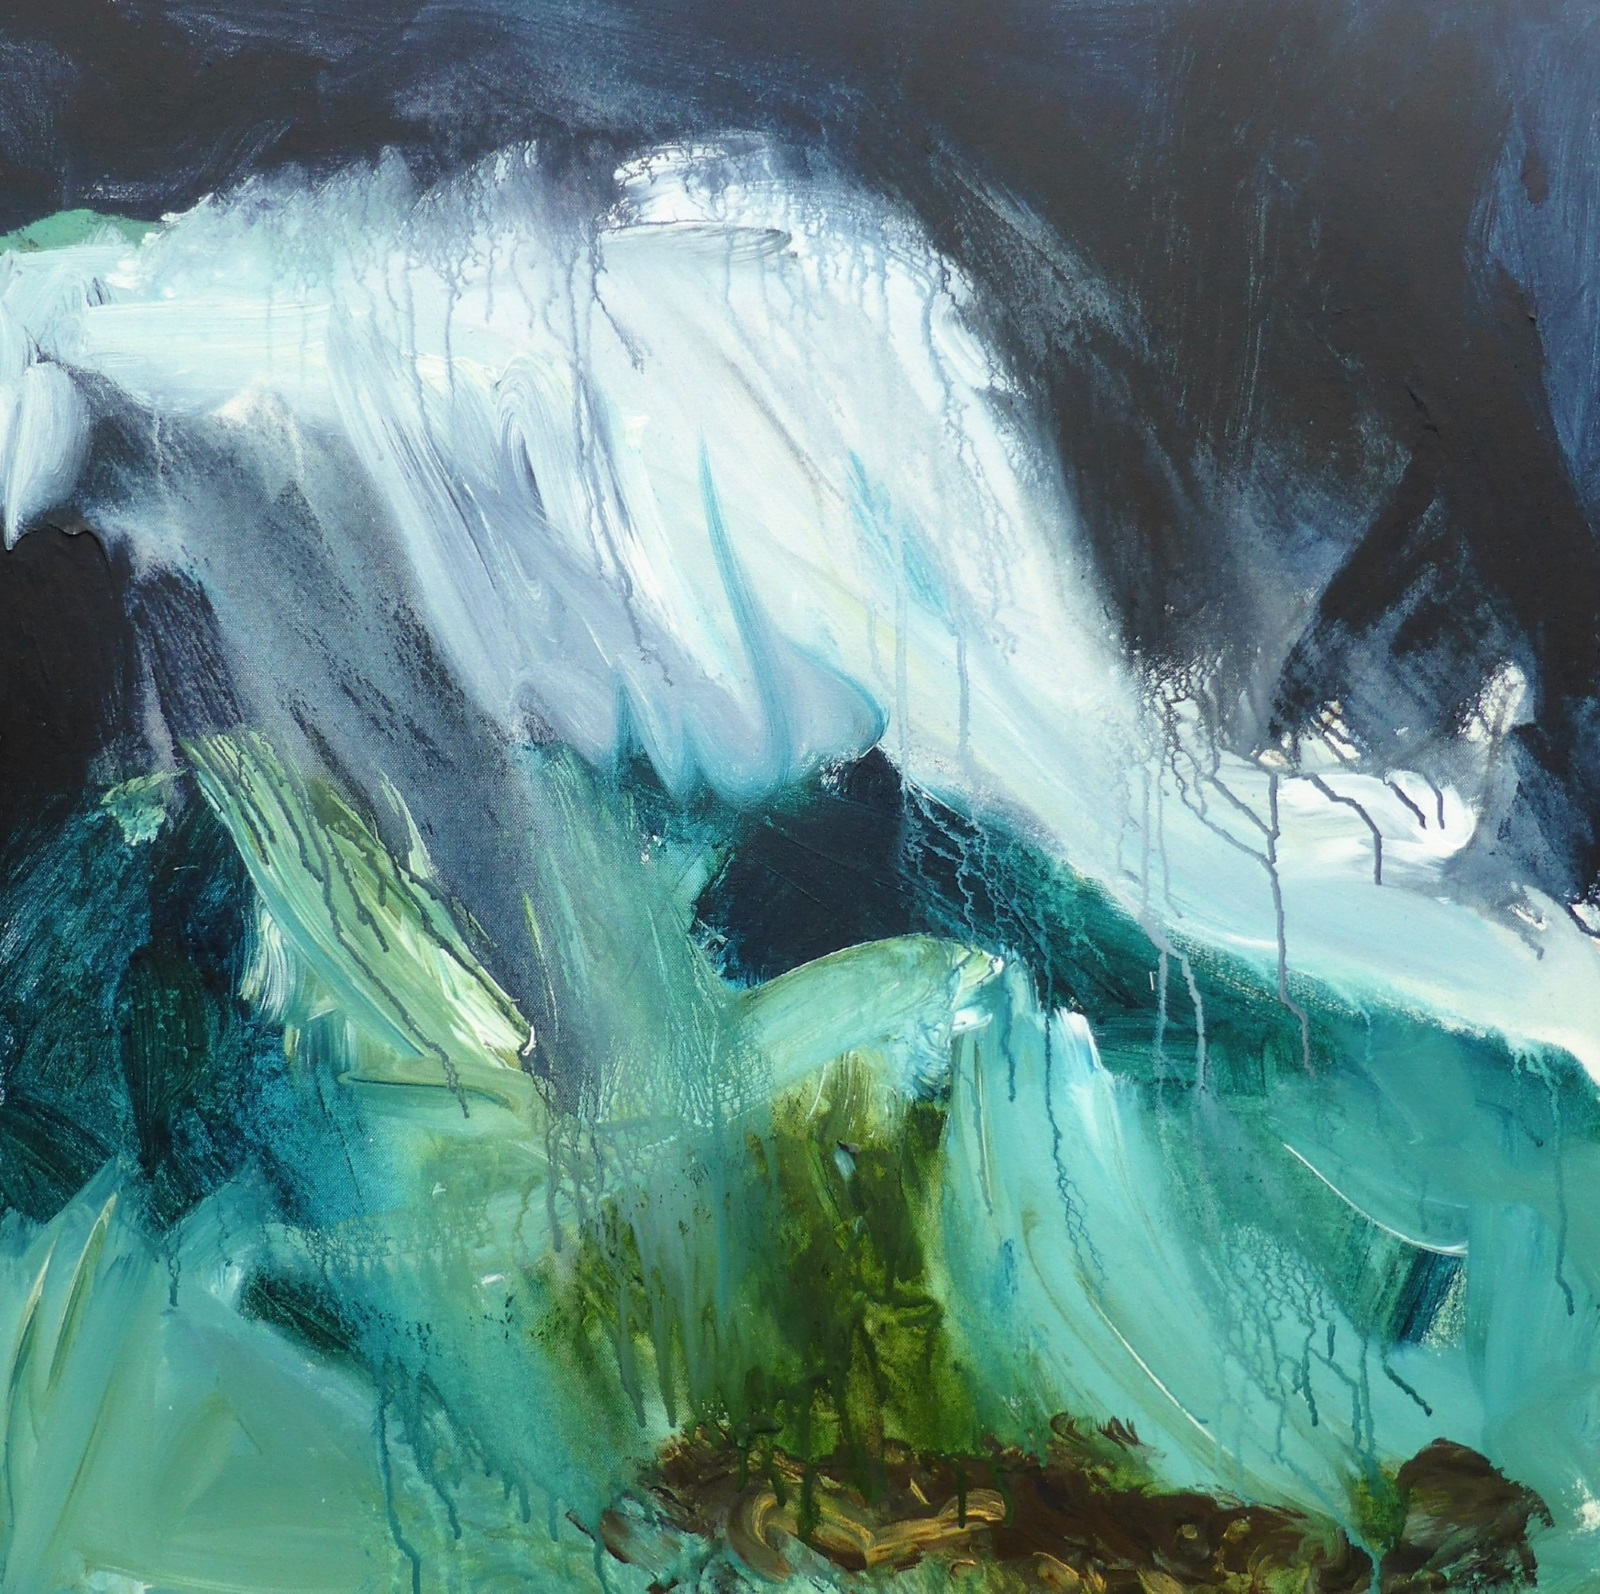 Breaking Wave I, mixed media on canvas, 80 x 80cm